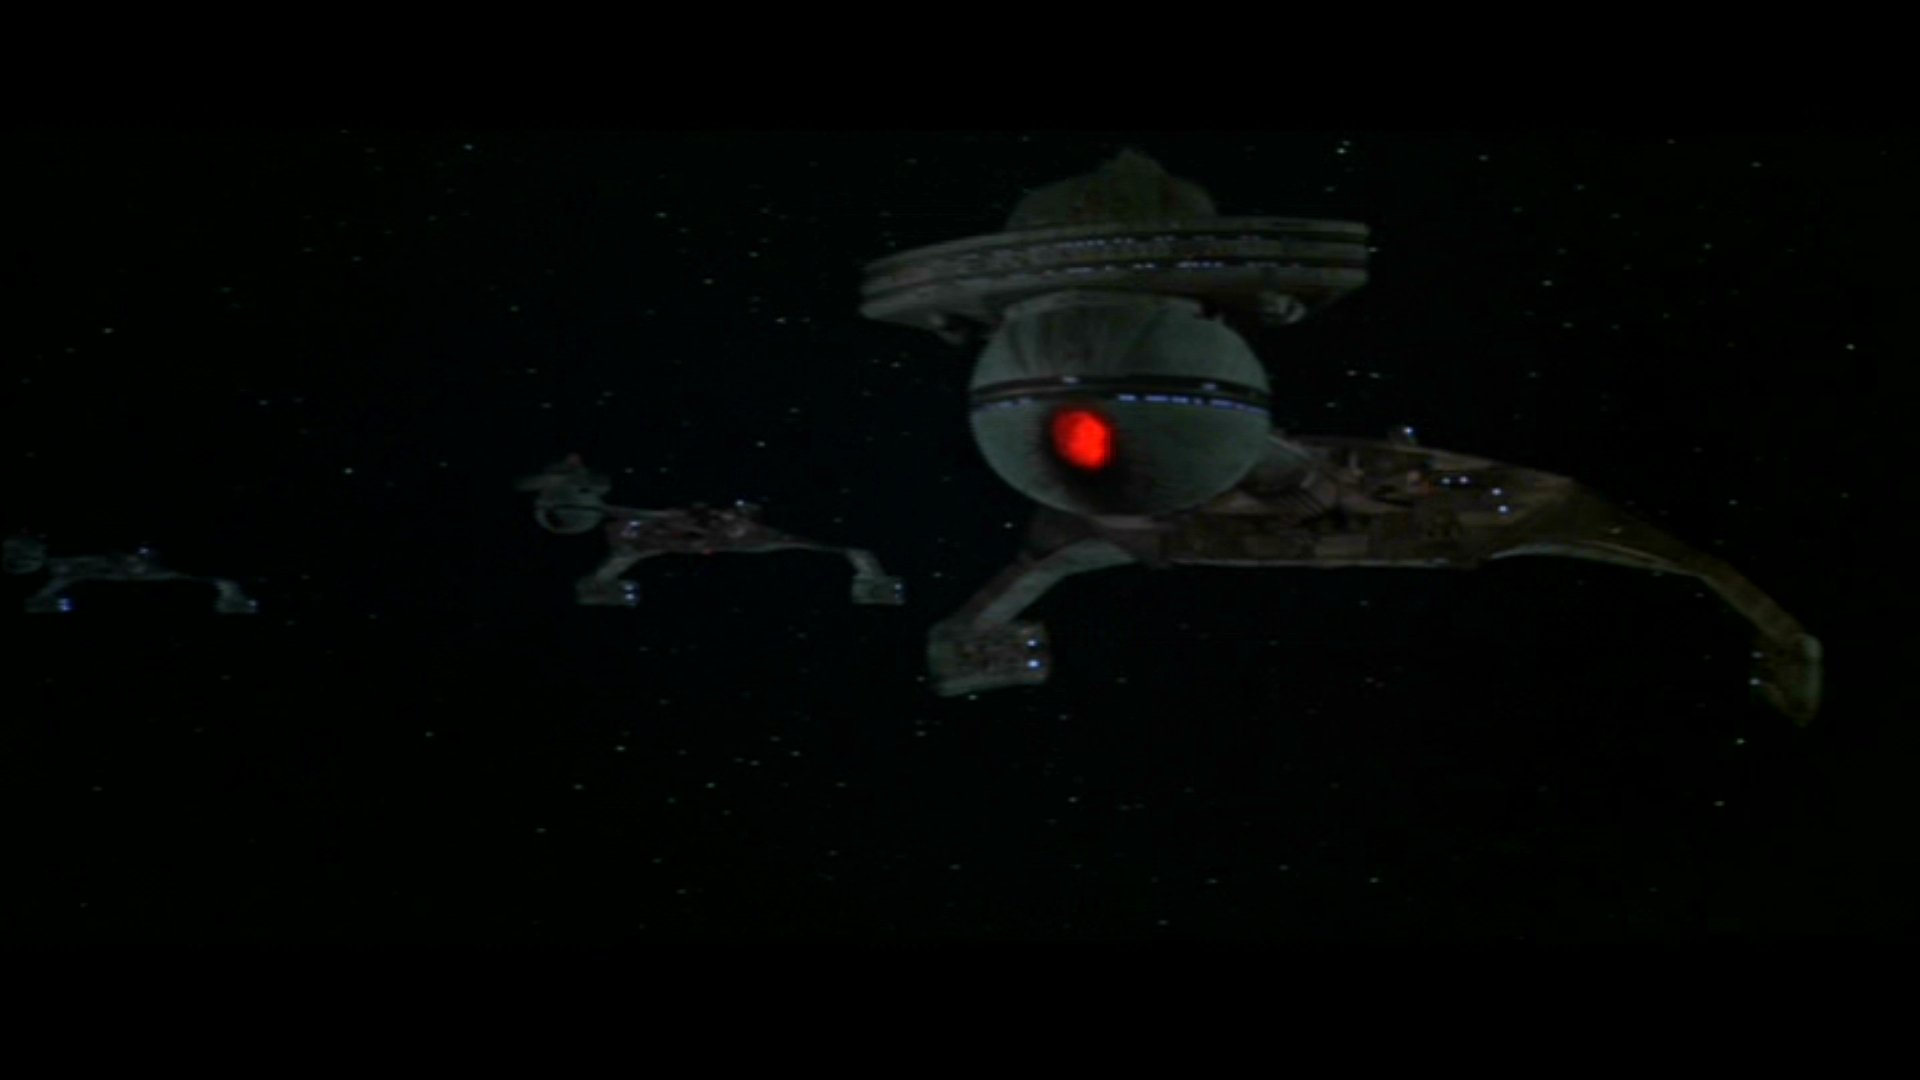 Download Star Trek The Motion Picture Wallpaper Gallery